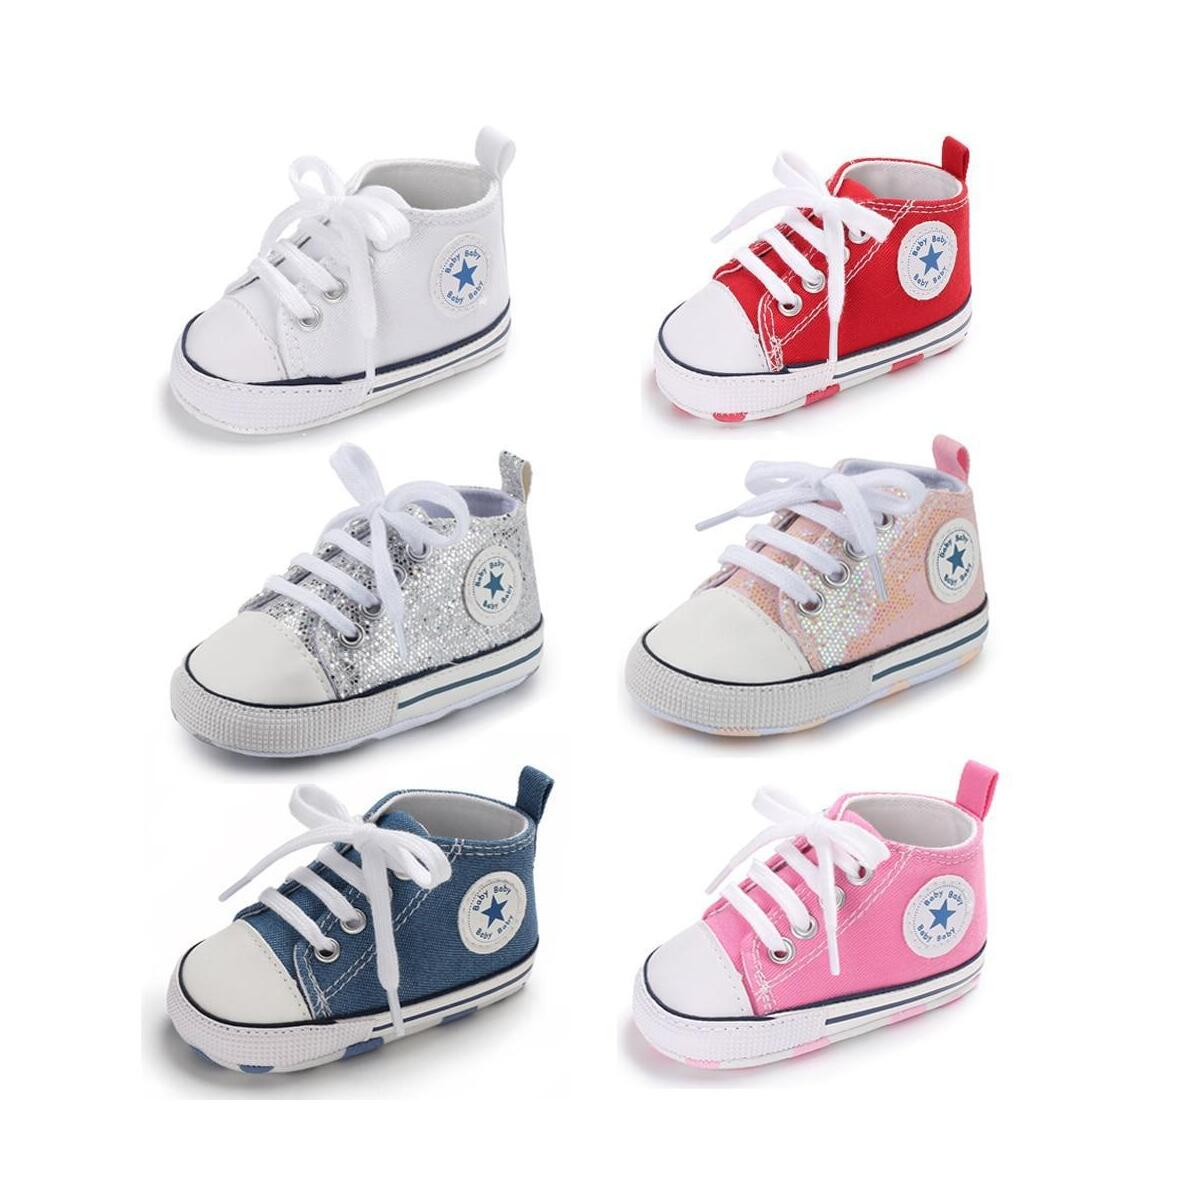 Baby Girls Boys Toddler Sneakers Soft Sole  High-Top Ankle Infant First Walkers Crib Anti-slip Shoes